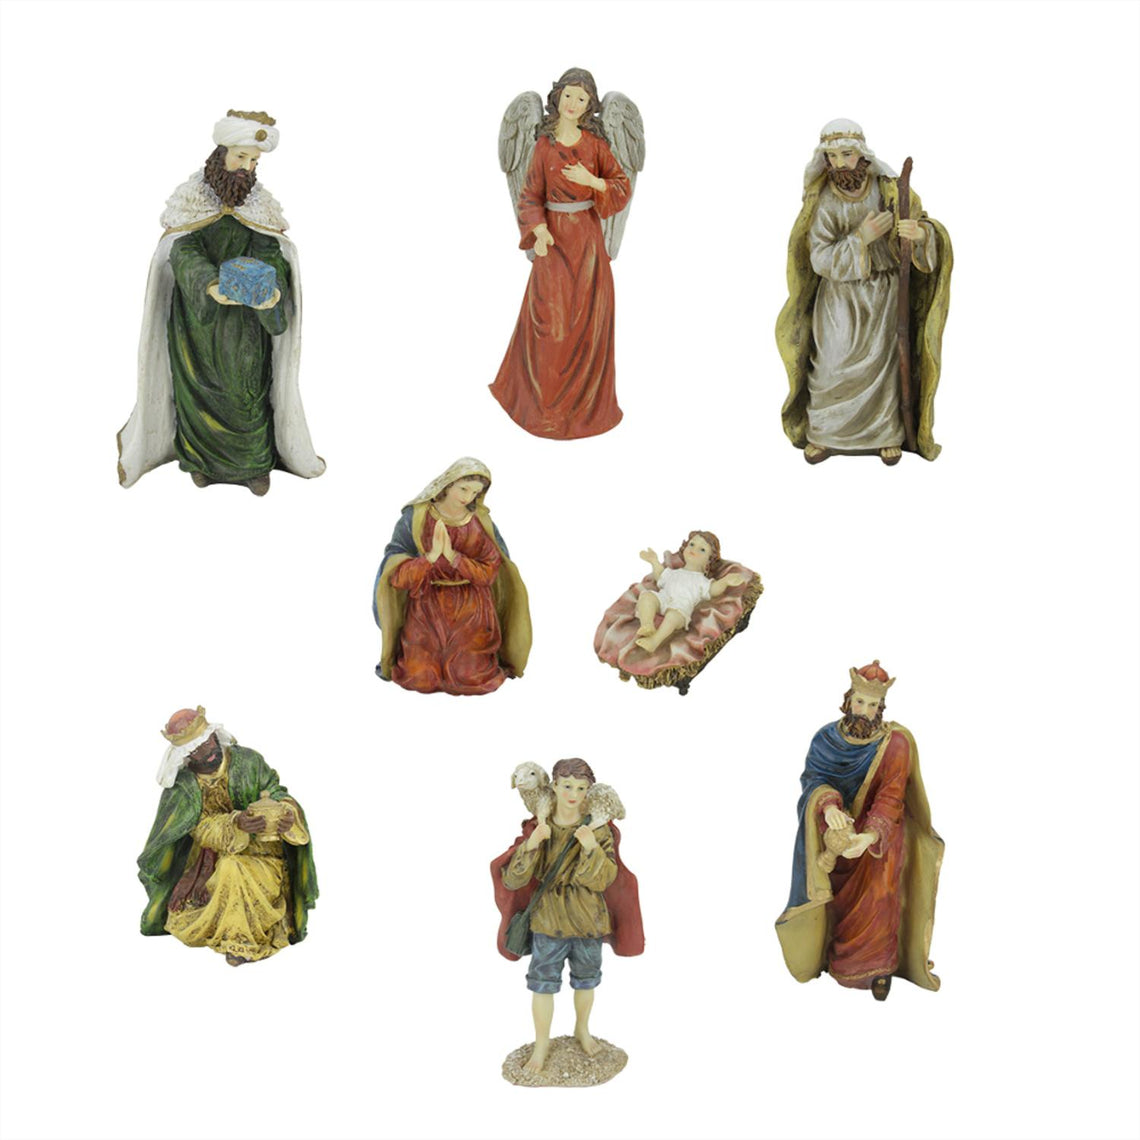 8-Piece Jewel Tone Inspirational Religious Christmas Nativity Figure Set 12.25